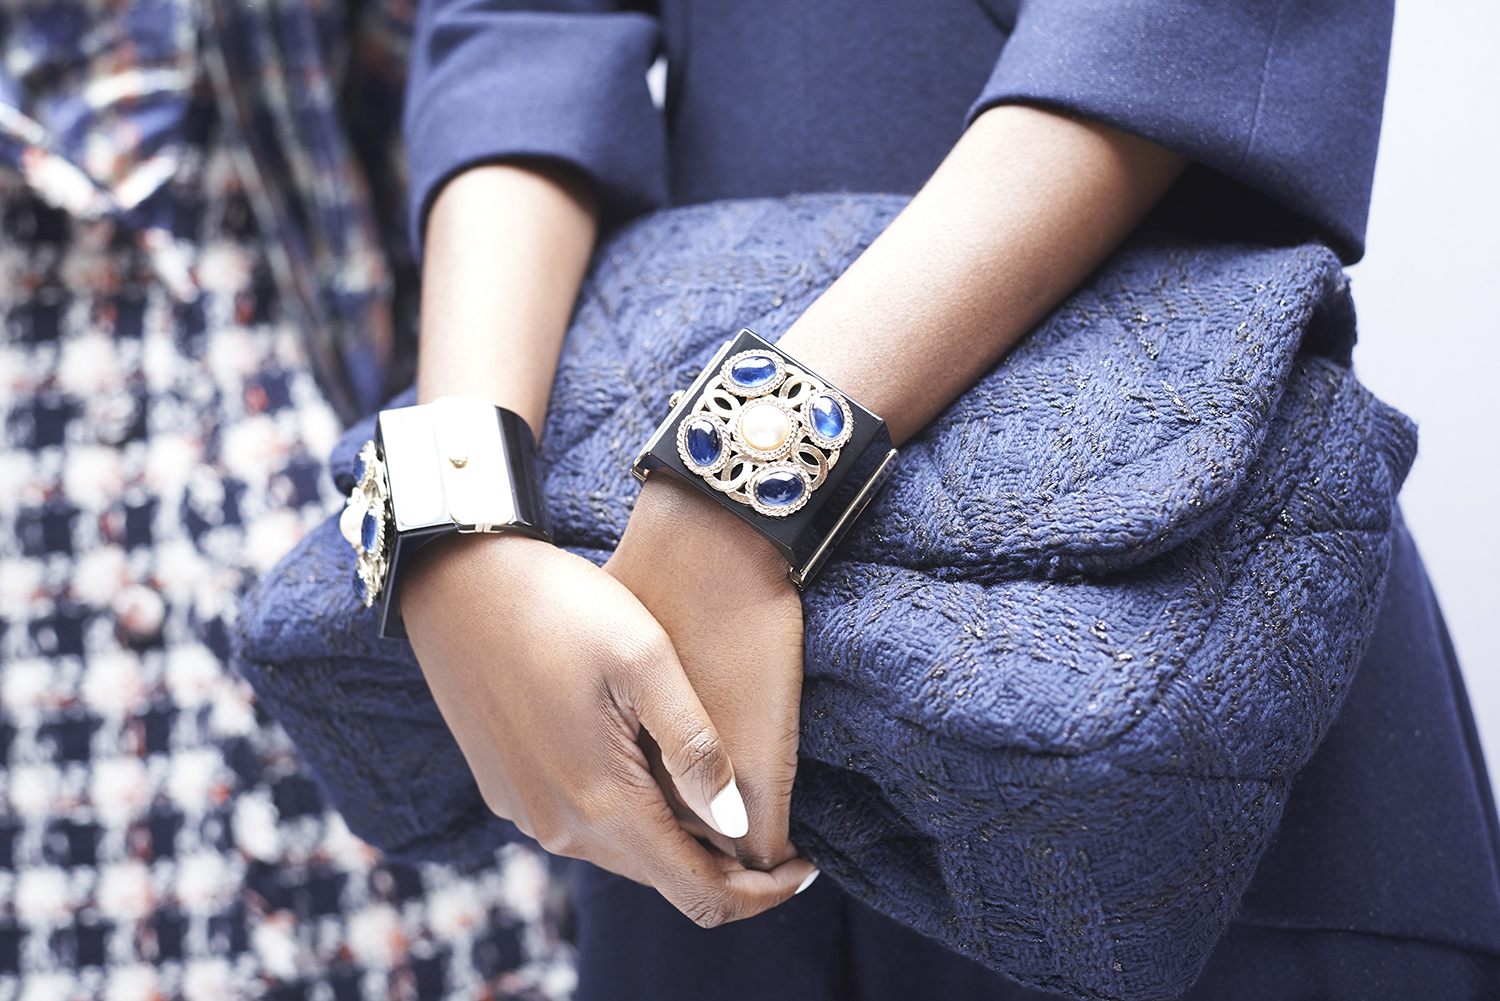 221e9241211 From LV's Mini Dauphine to Bottega's Arco: The hottest new classic ...